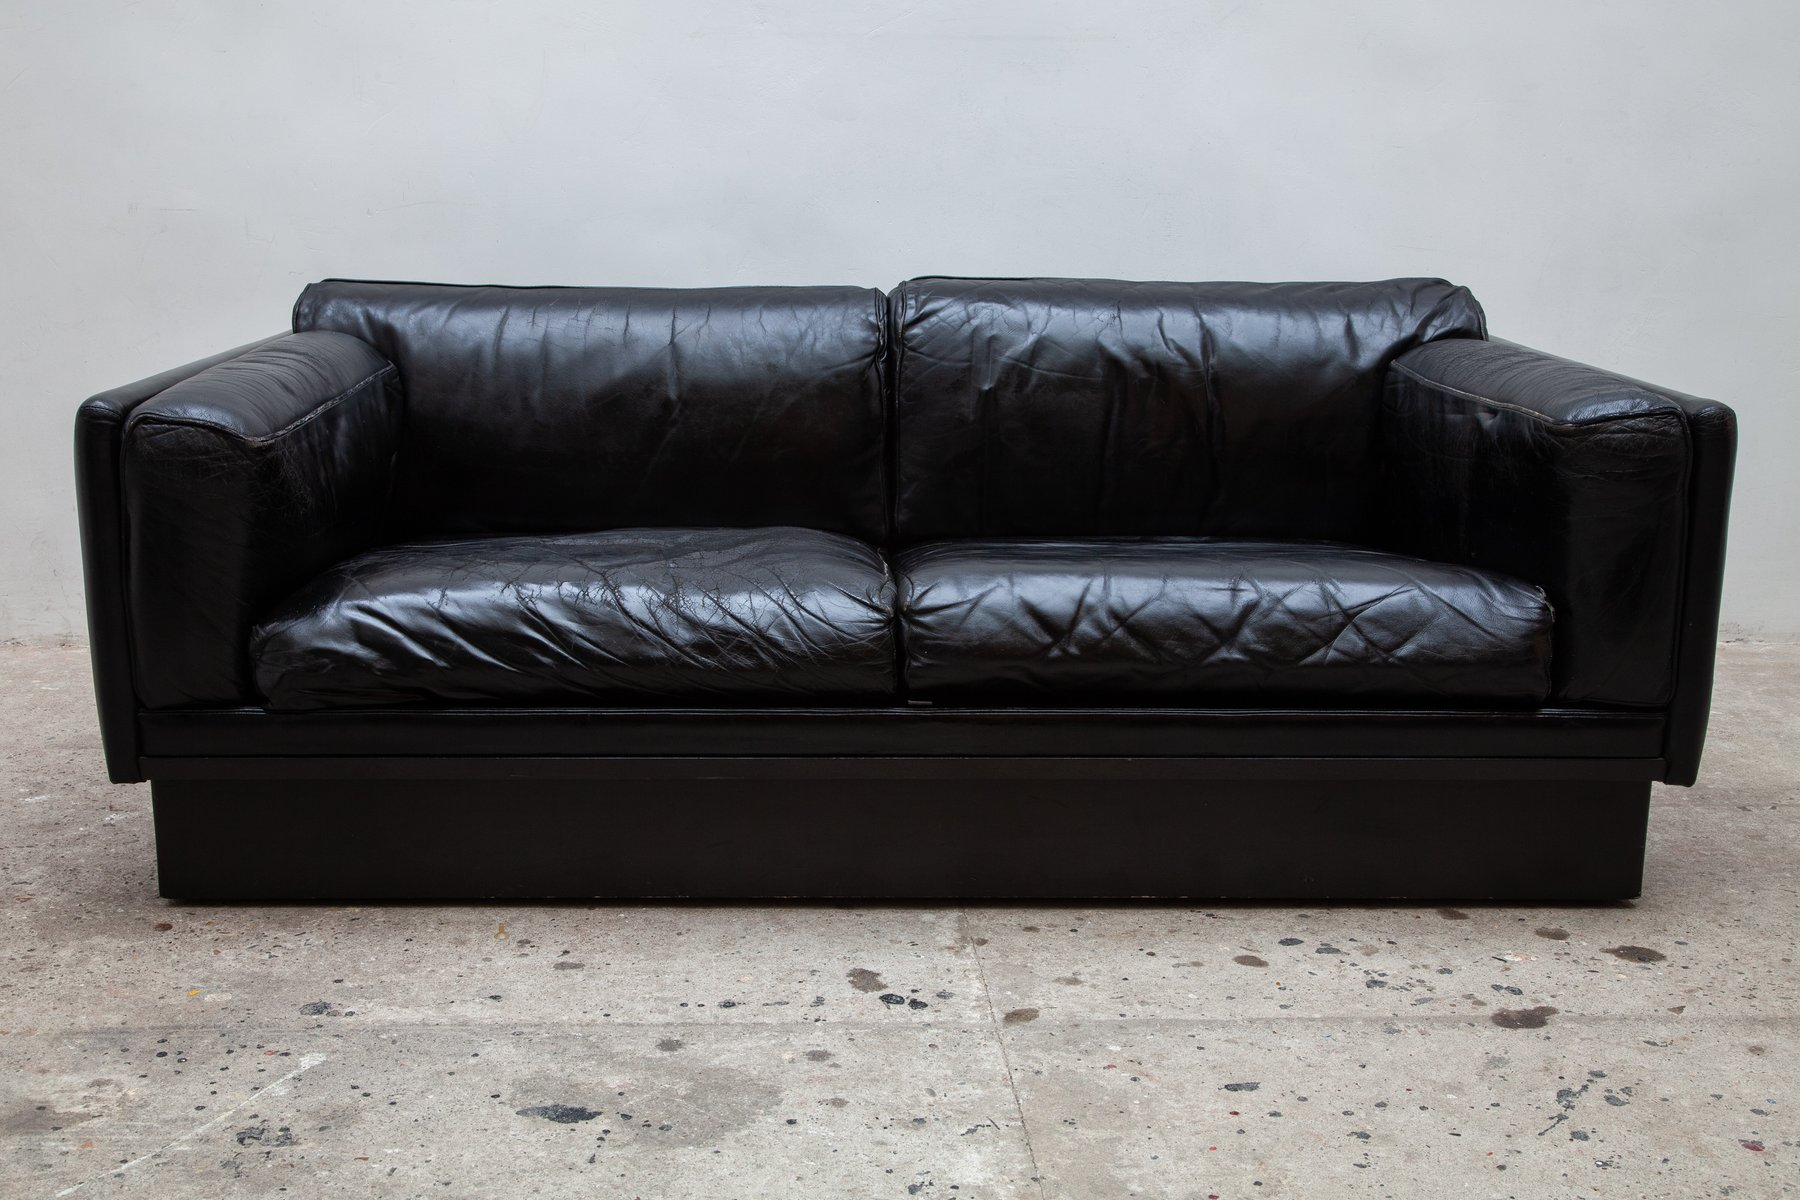 Vintage Belgian Black Leather Couch 1974 For Sale At Pamono